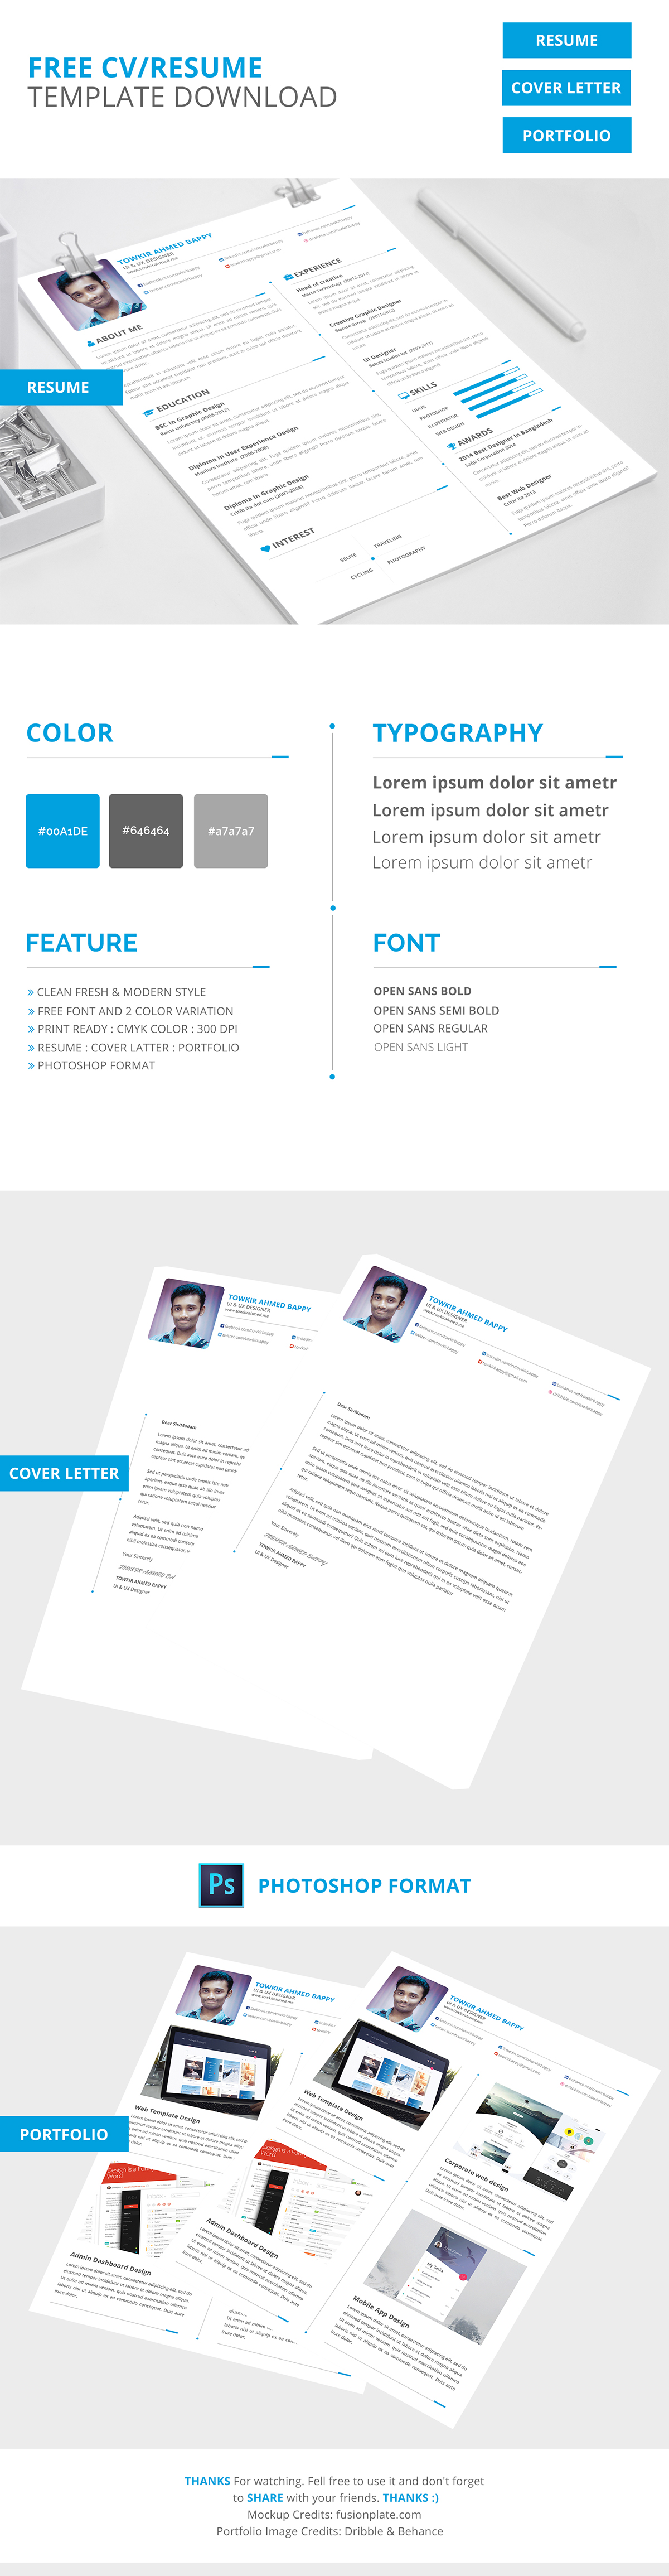 Free Creative Resume/ Cv Template Download On Behance